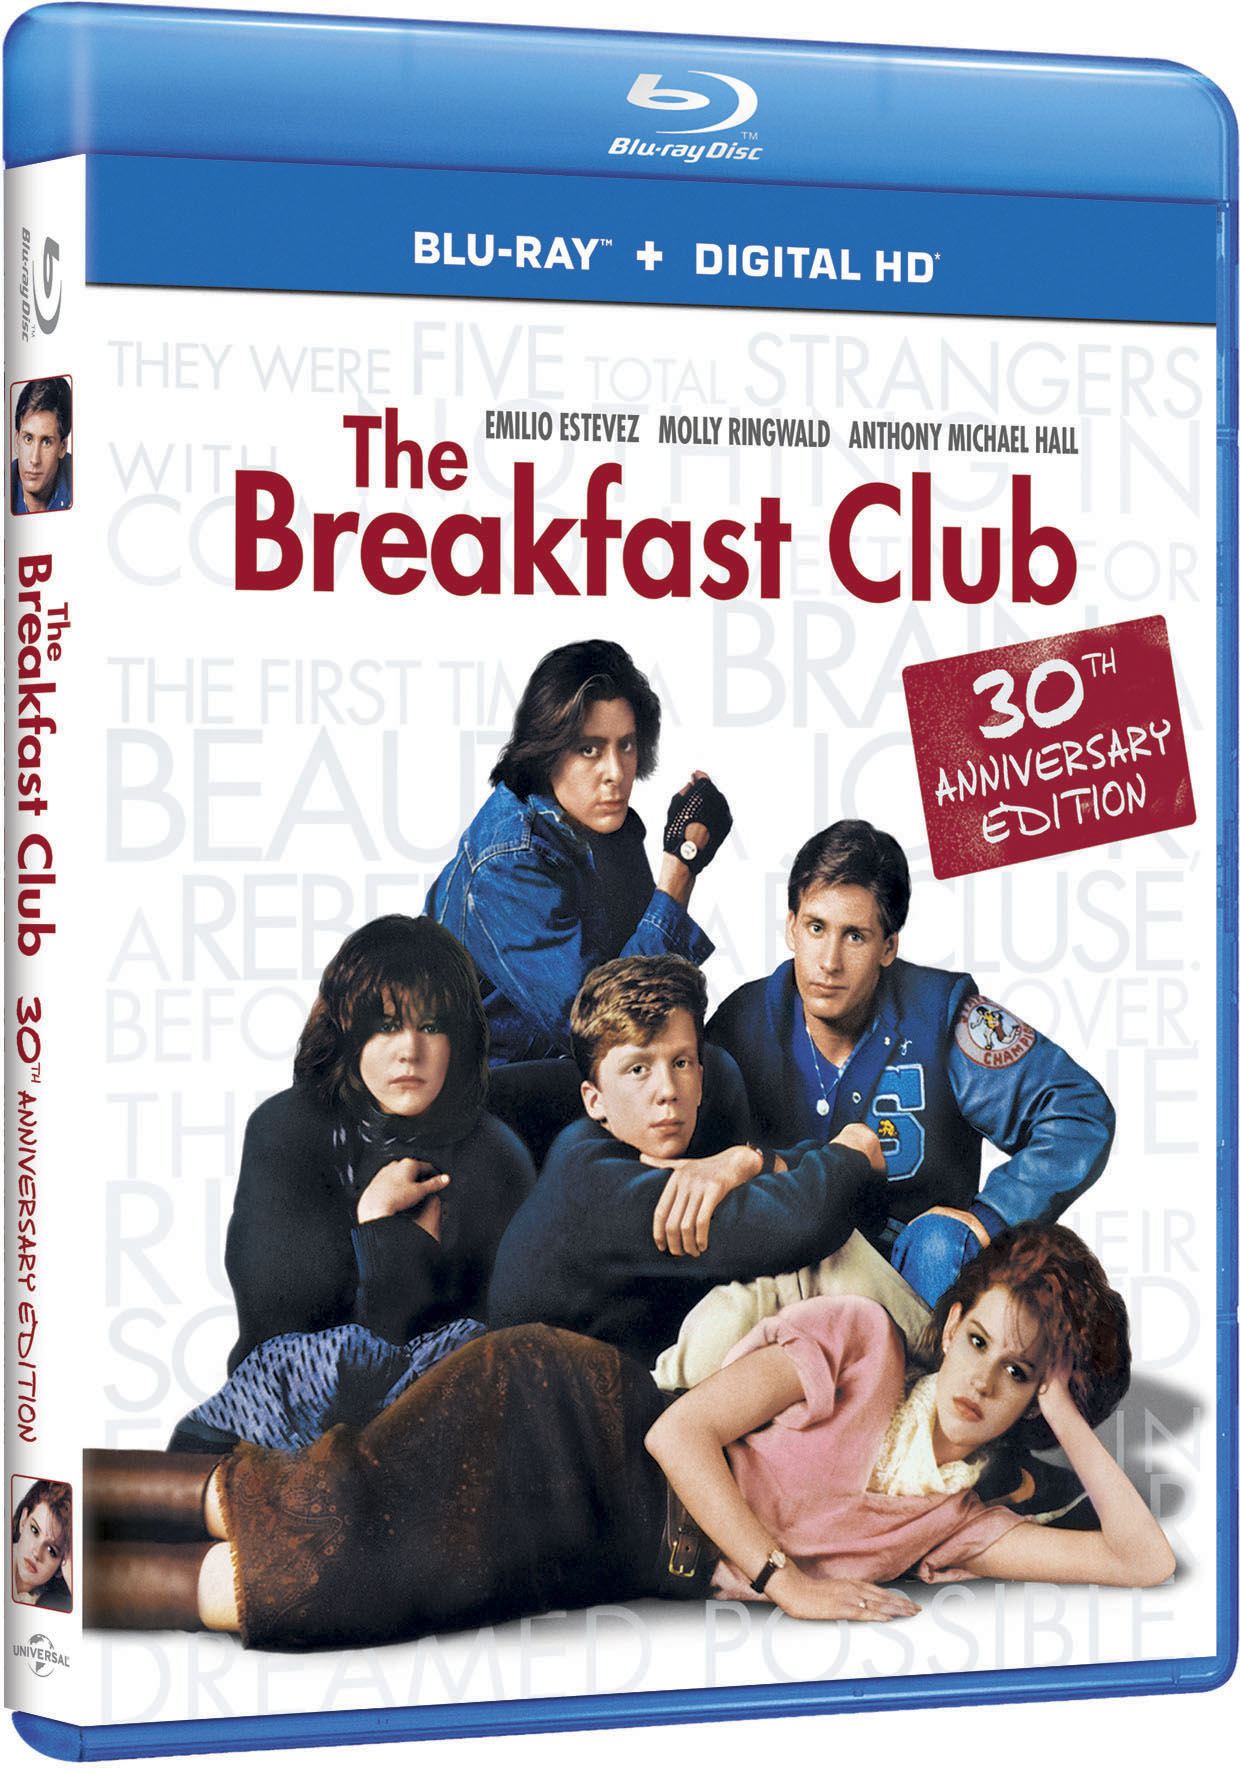 The Breakfast Club Blu-ray Review